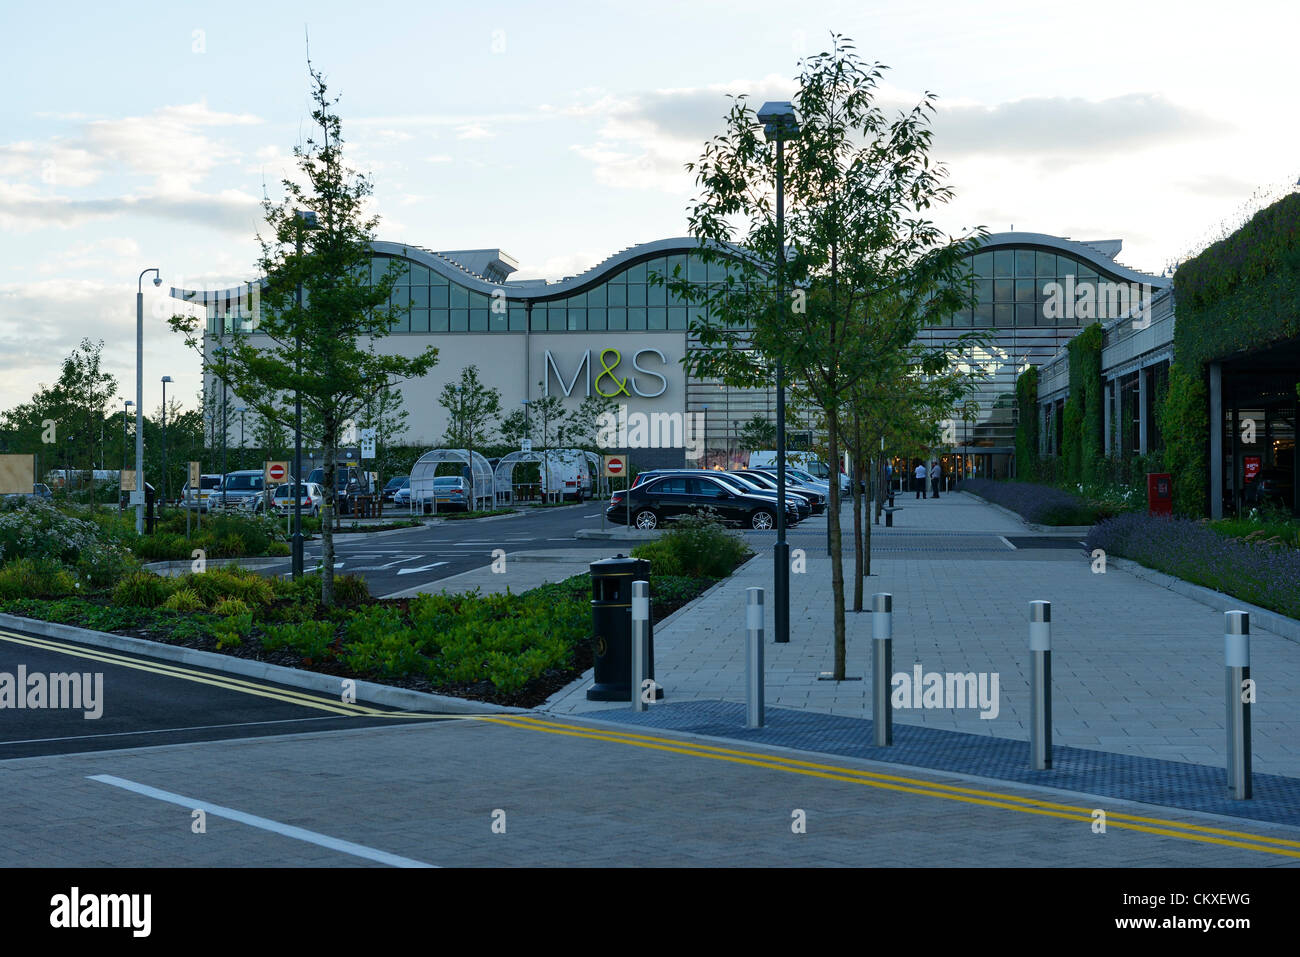 The flagship Marks & Spencer Store at Cheshire Oaks, Cheshire, UK which opens to the public at 10am Wednesday - Stock Image